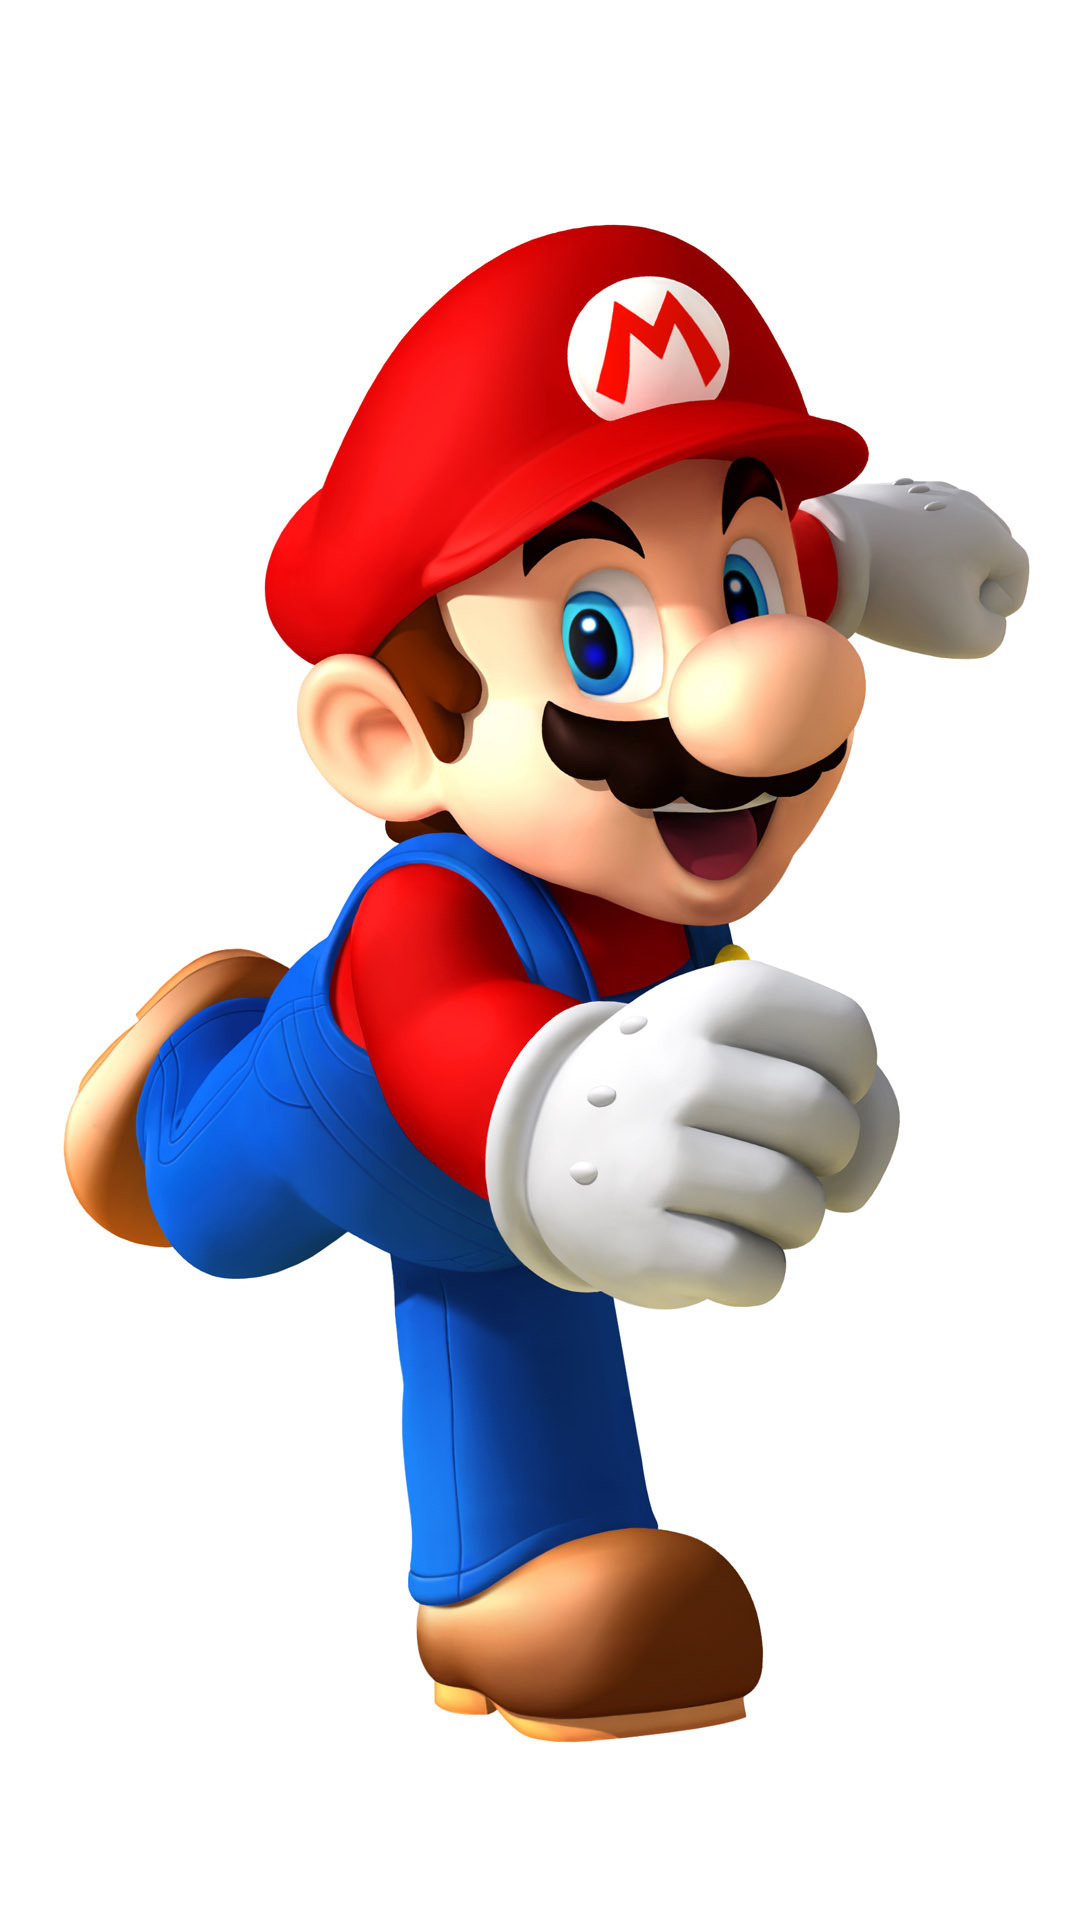 iphone wallpaper mario Mario